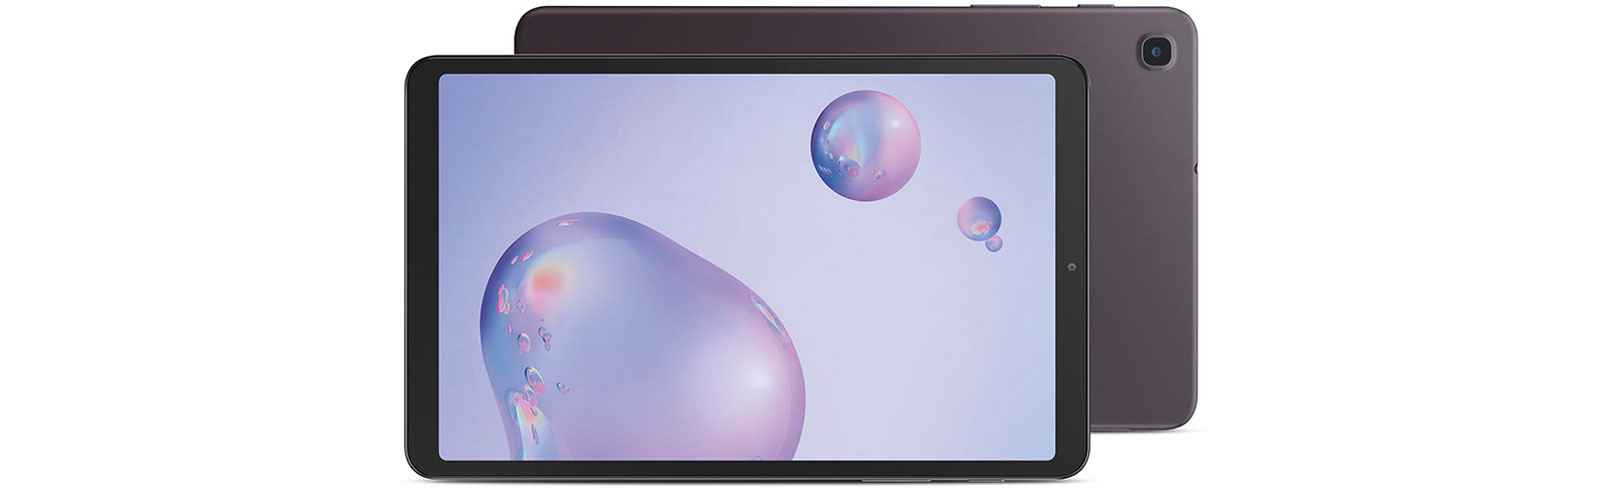 Samsung Galaxy Tab A 8.4 (2020) goes on sale in the US - specifications and price